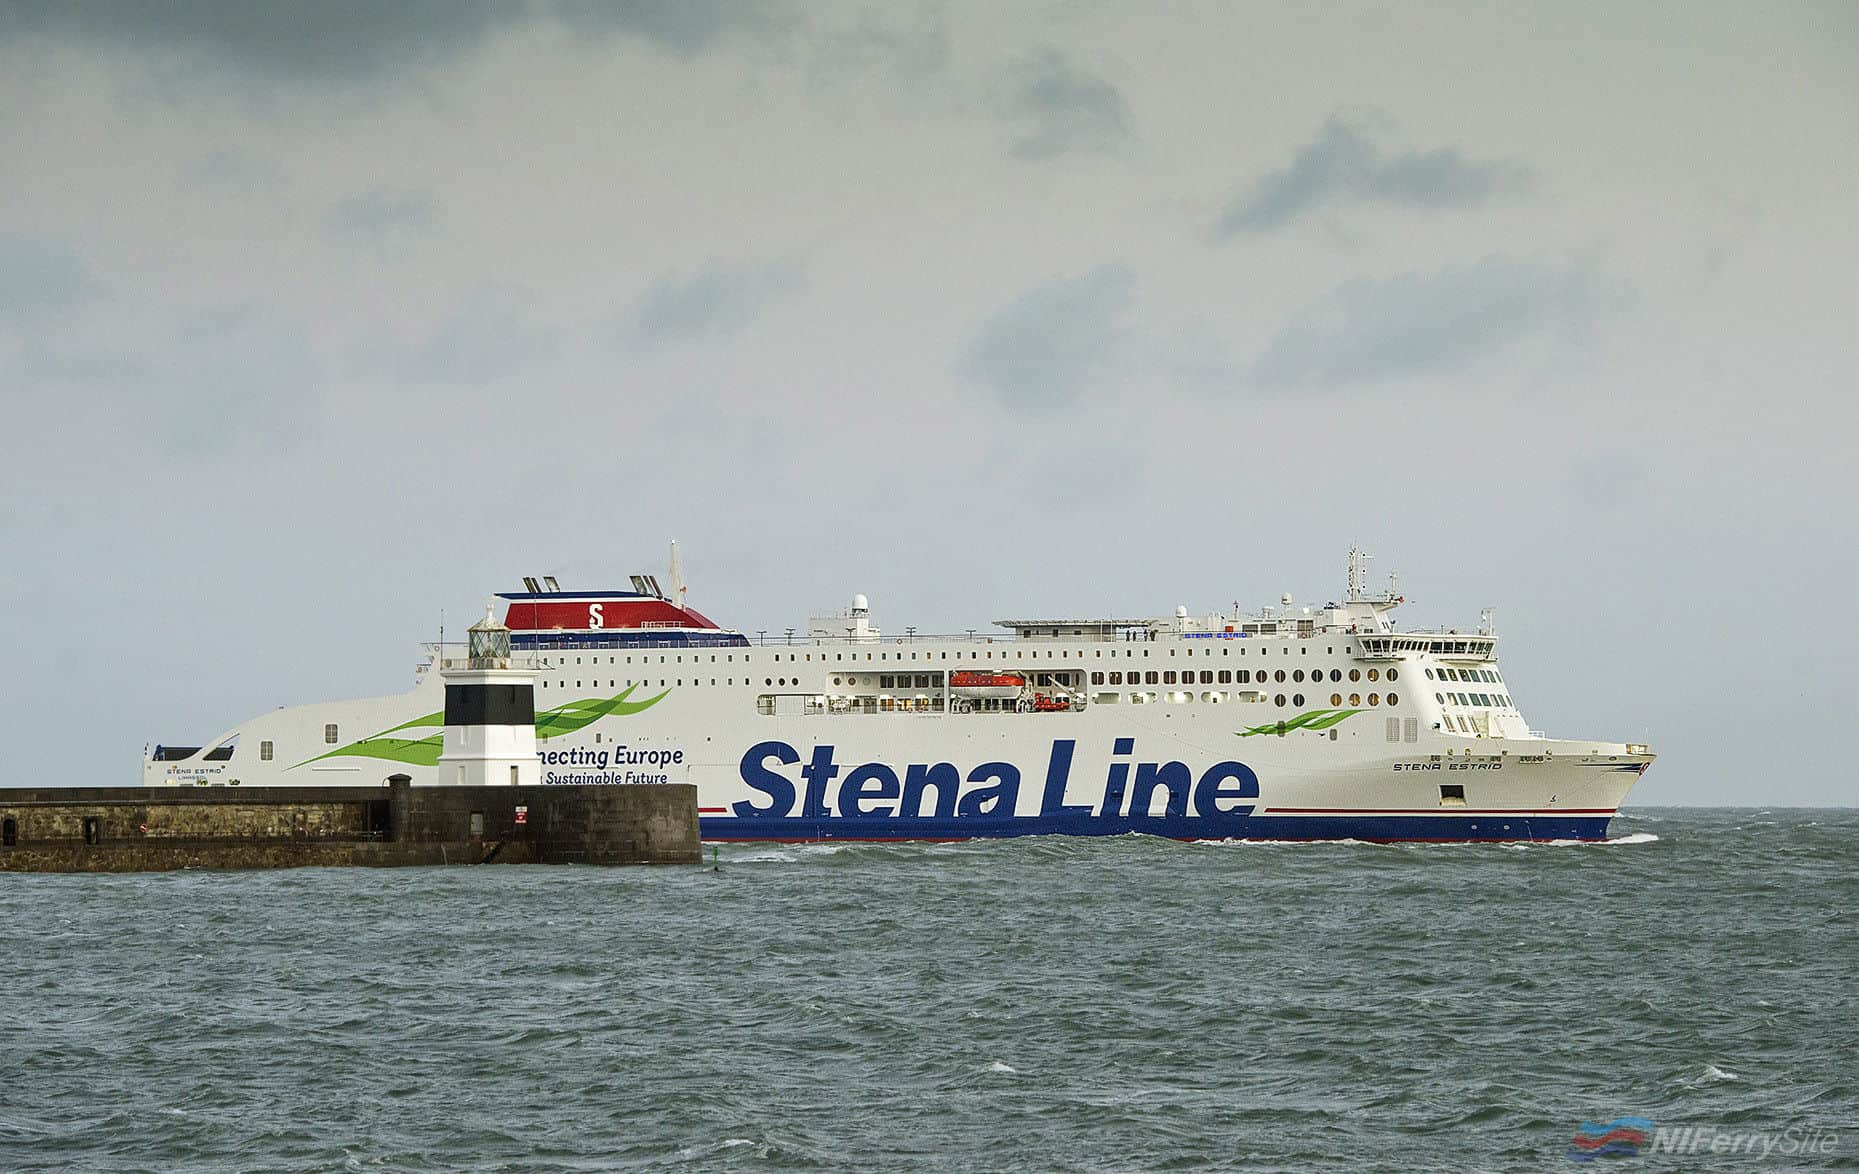 HOME AT LAST: STENA Line's newest ferry Stena Estrid arrived in Holyhead this morning (Monday) after a five-week 10,000 mile journey from the AVIC Weihai Shipyard in north-western China, where she was built. The first of five next generation Stena Line RoPax vessels to be completed at the shipyard, Stena Estrid sailed into the Welsh port at approximately 7.00am, following a brief stop in Dublin last night for a successful berthing trial. Now Estrid will undergo final preparations before starting service on the Holyhead to Dublin route in mid-January.